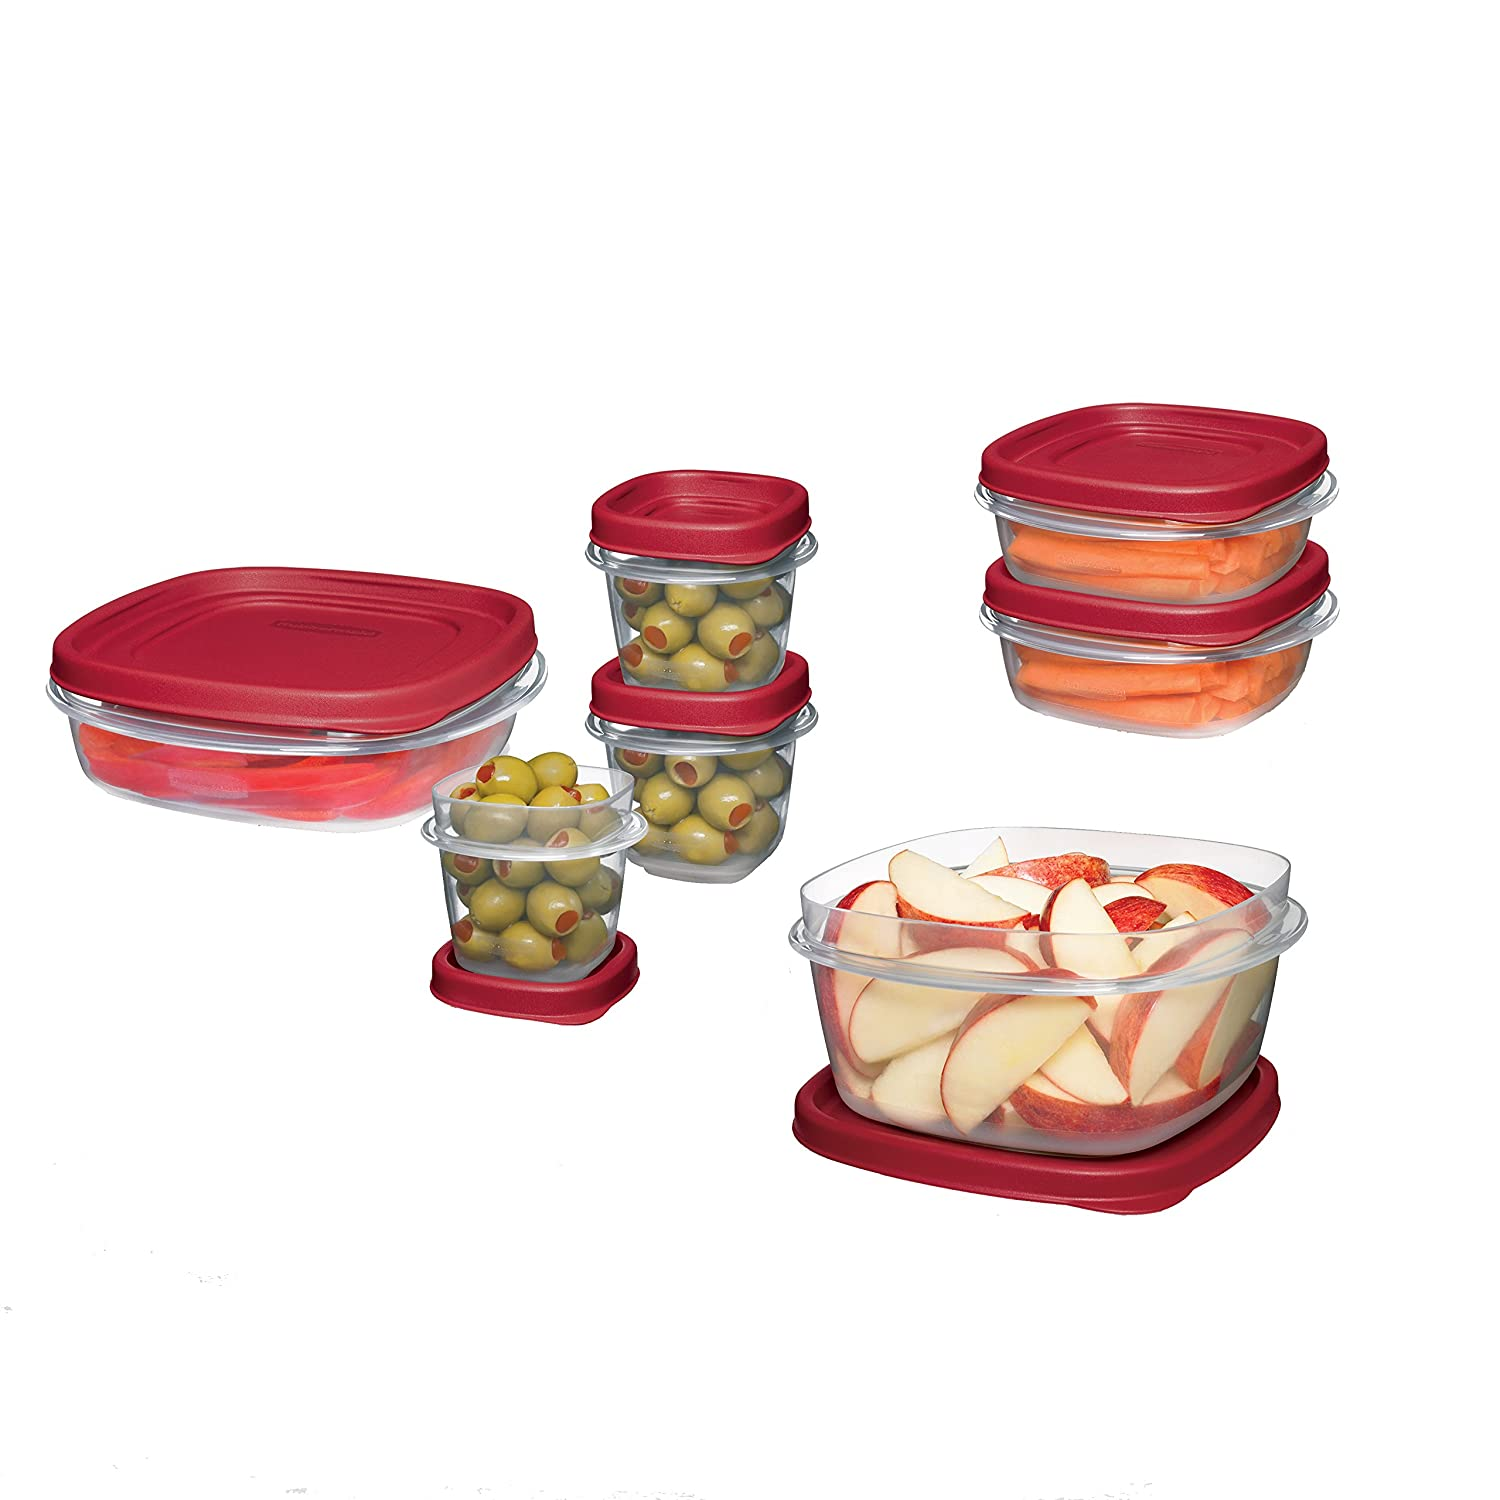 rubbermaid easy find lids food storage container bpa free. Black Bedroom Furniture Sets. Home Design Ideas